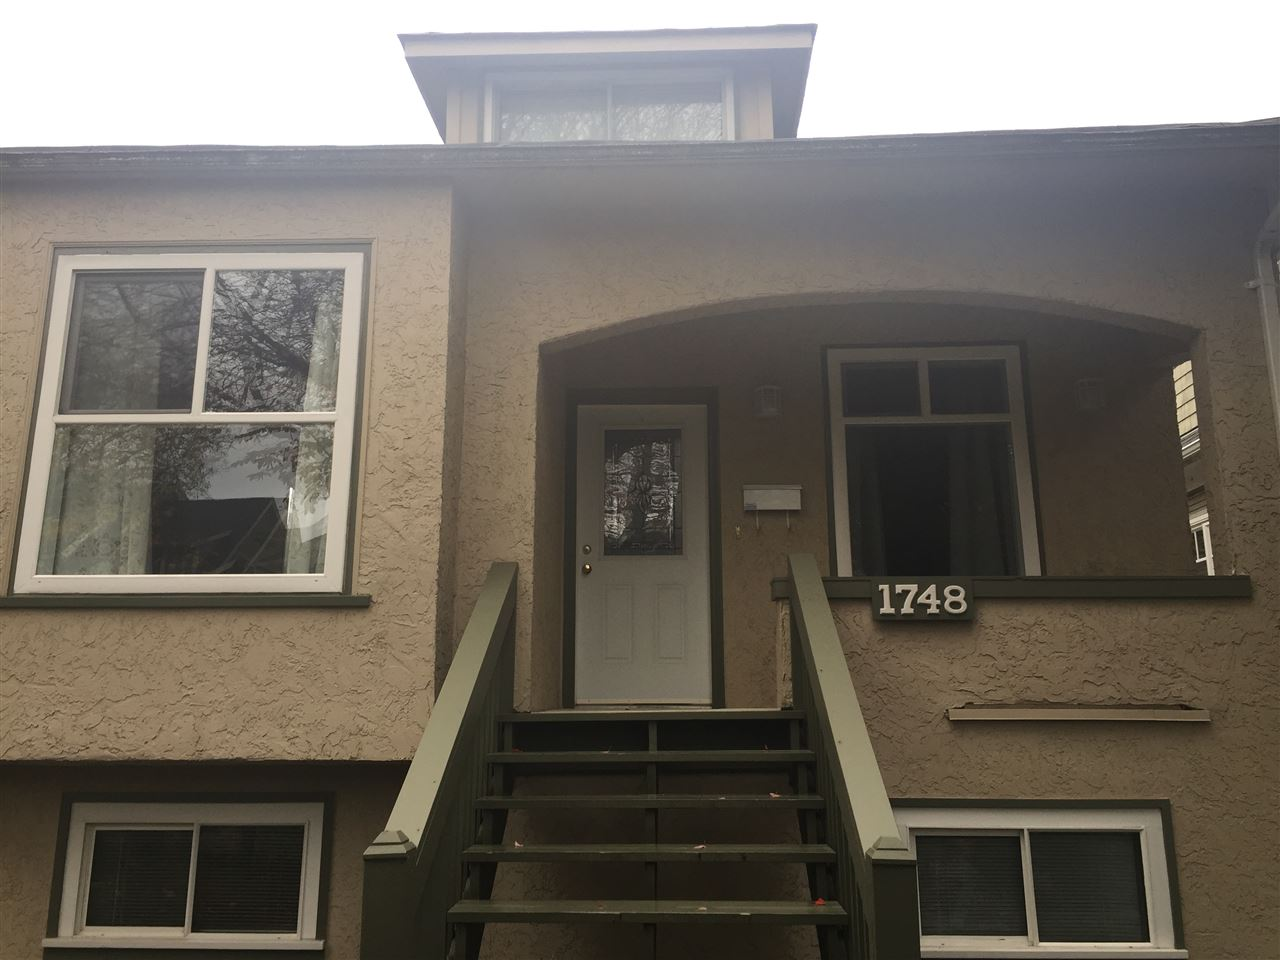 Main Photo: 1748 E NAPIER Street in Vancouver: Grandview VE House for sale (Vancouver East)  : MLS(r) # R2119829